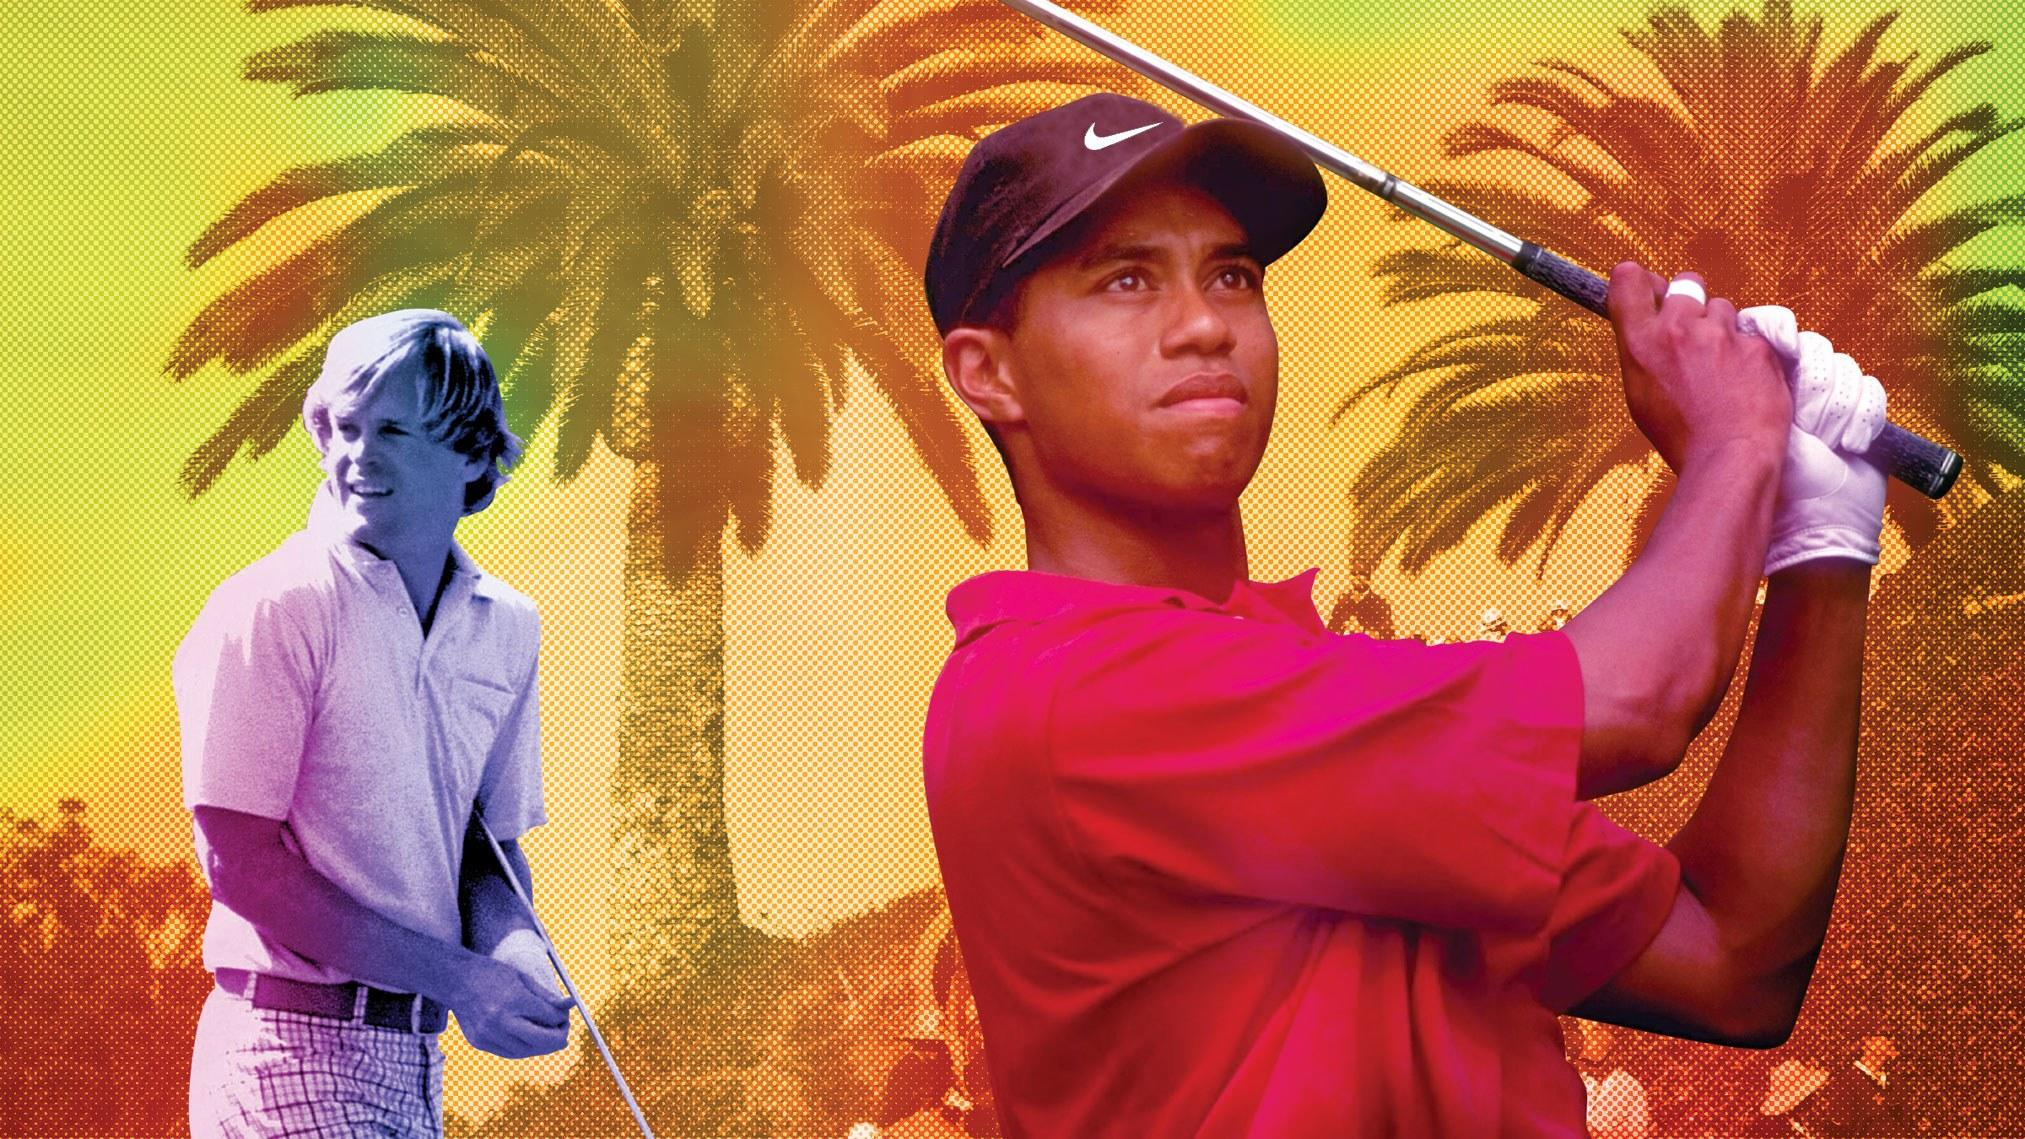 The GOAT: Woods and Miller get testy, Palmer and Norman get a shot at revenge as match play begins